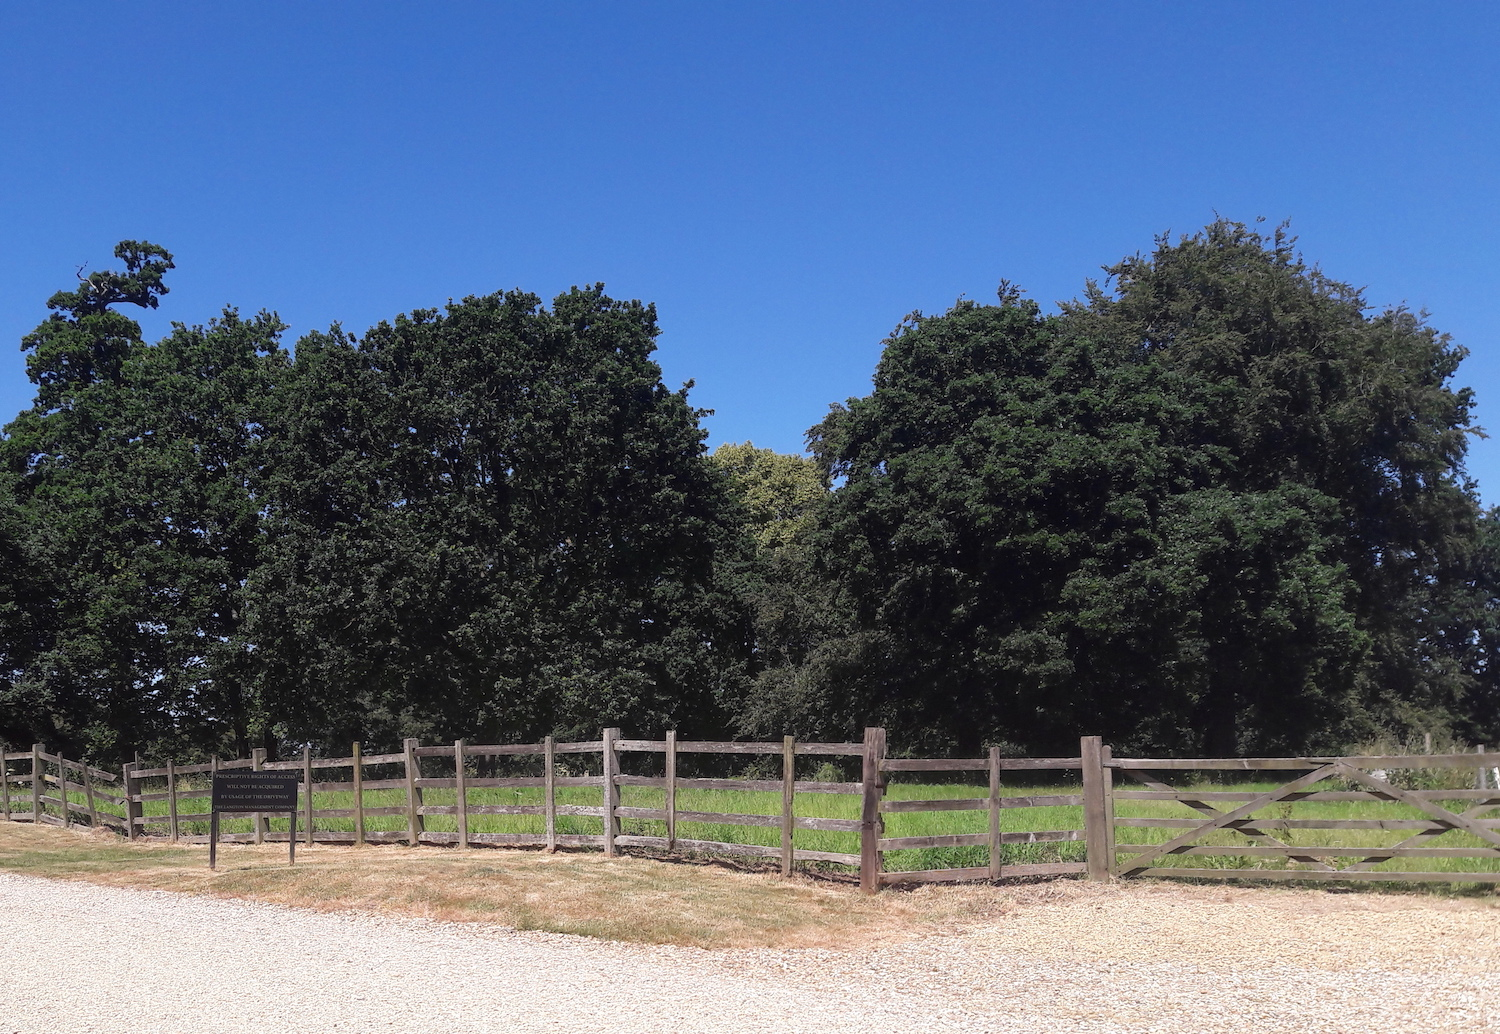 Langton Hall paddock in the parkland